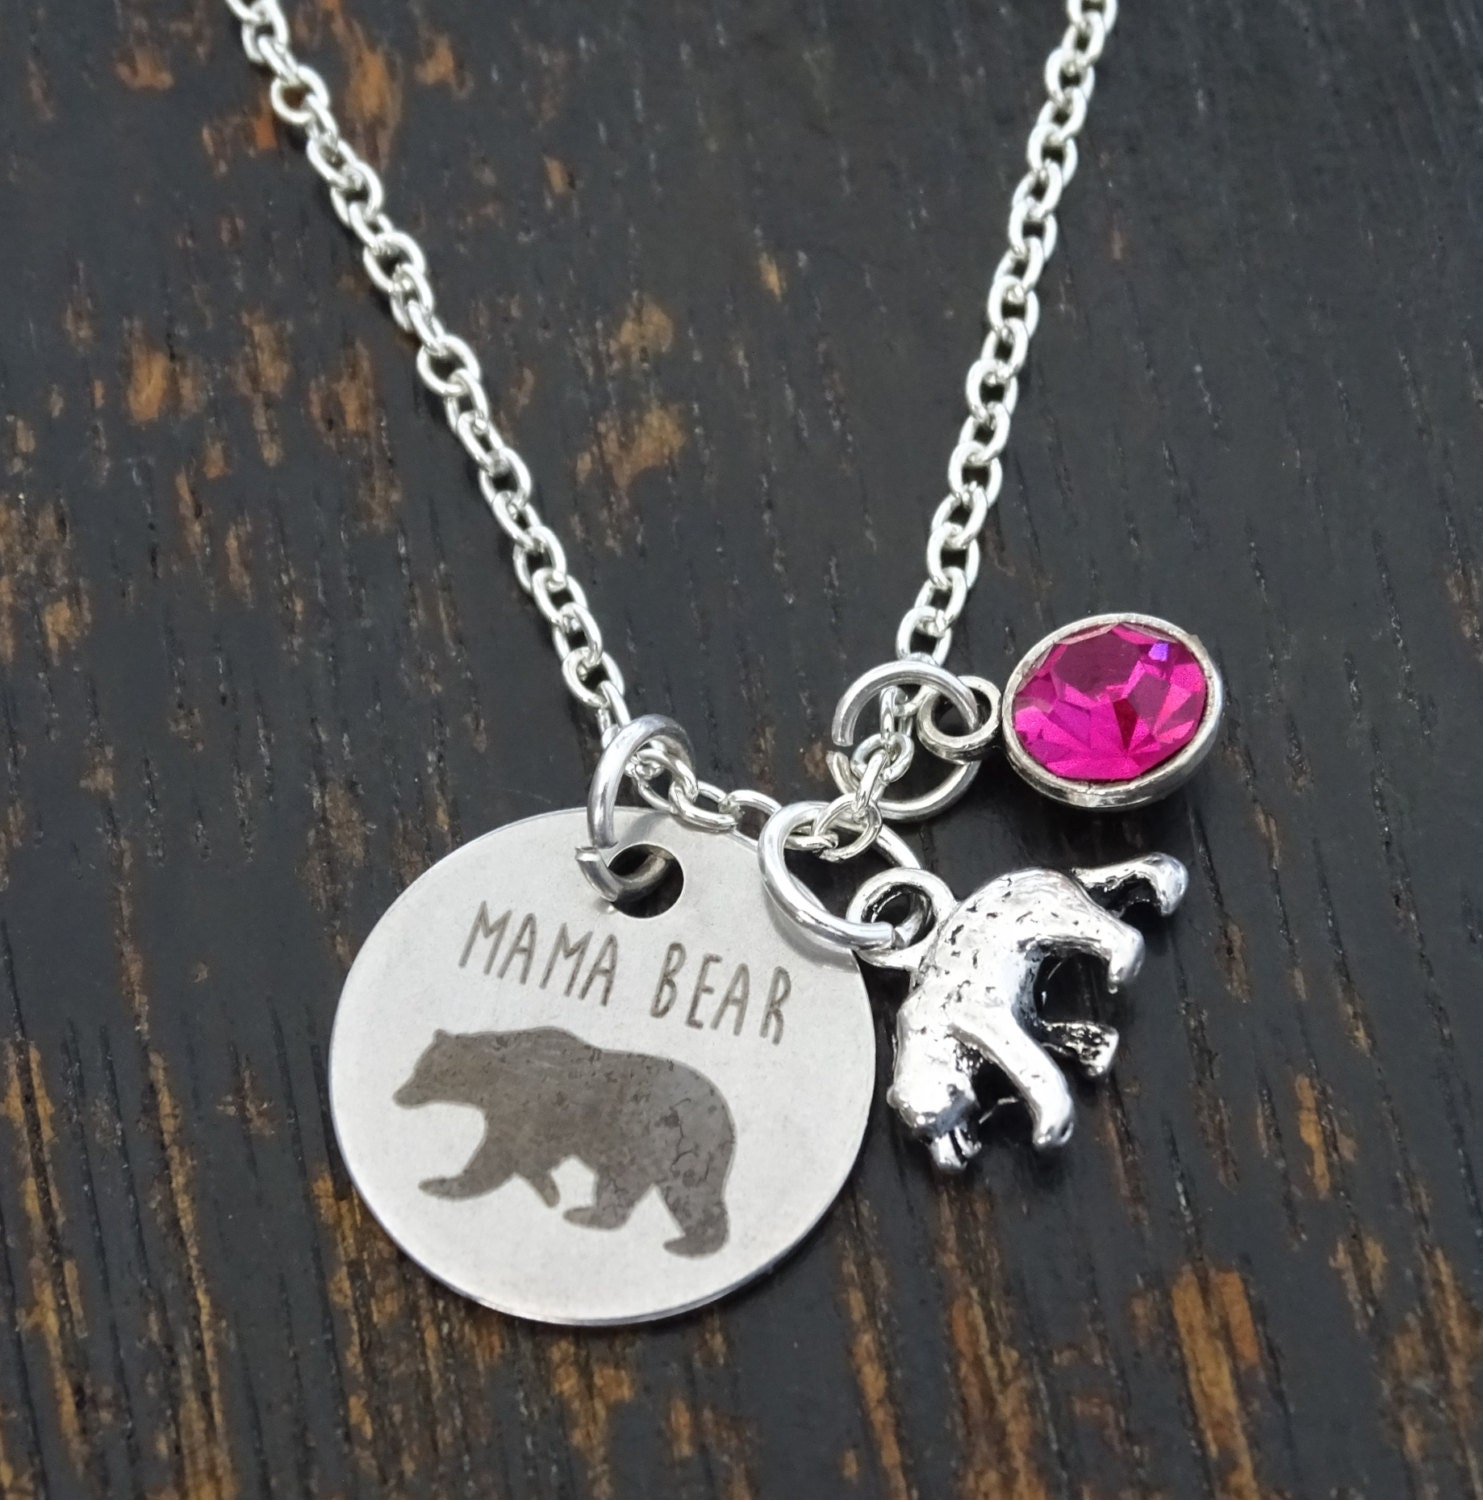 badger fruit wolf bear pendant strange image silver uk